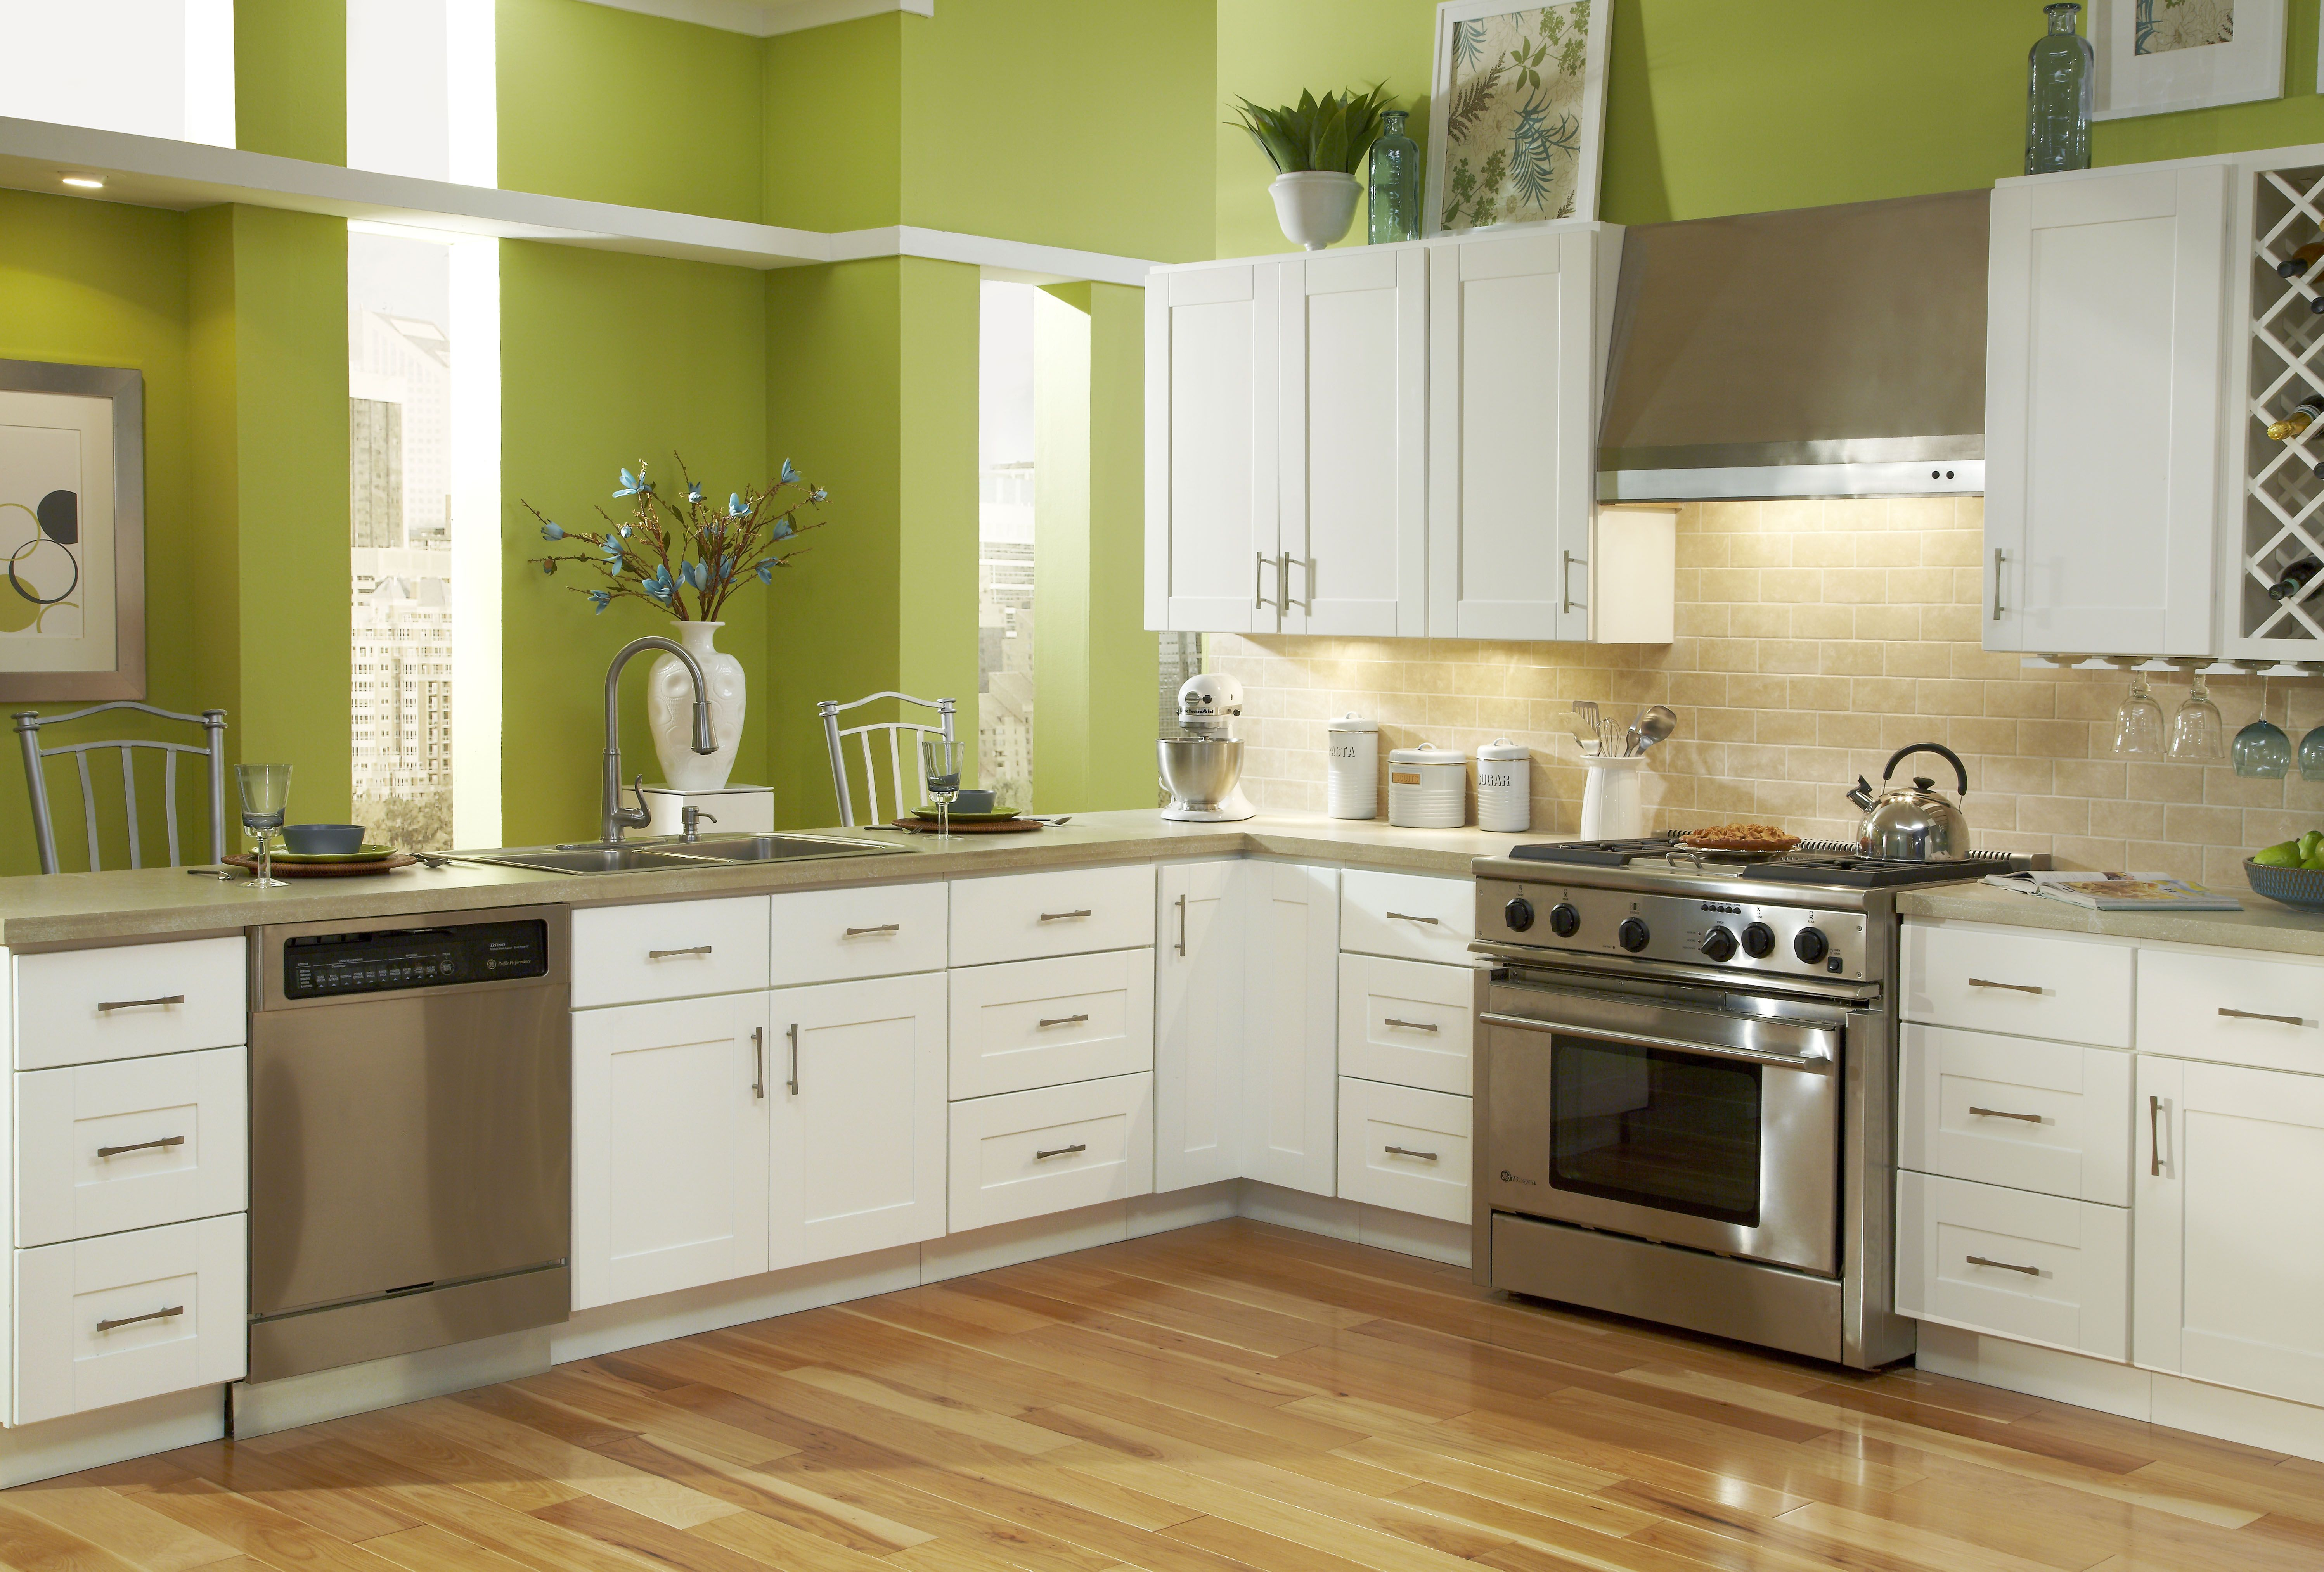 Kitchens To Go Undermount Sink Kitchen Cabinets S Malibu White Great With All Your Holiday Decor Cabinetstogo